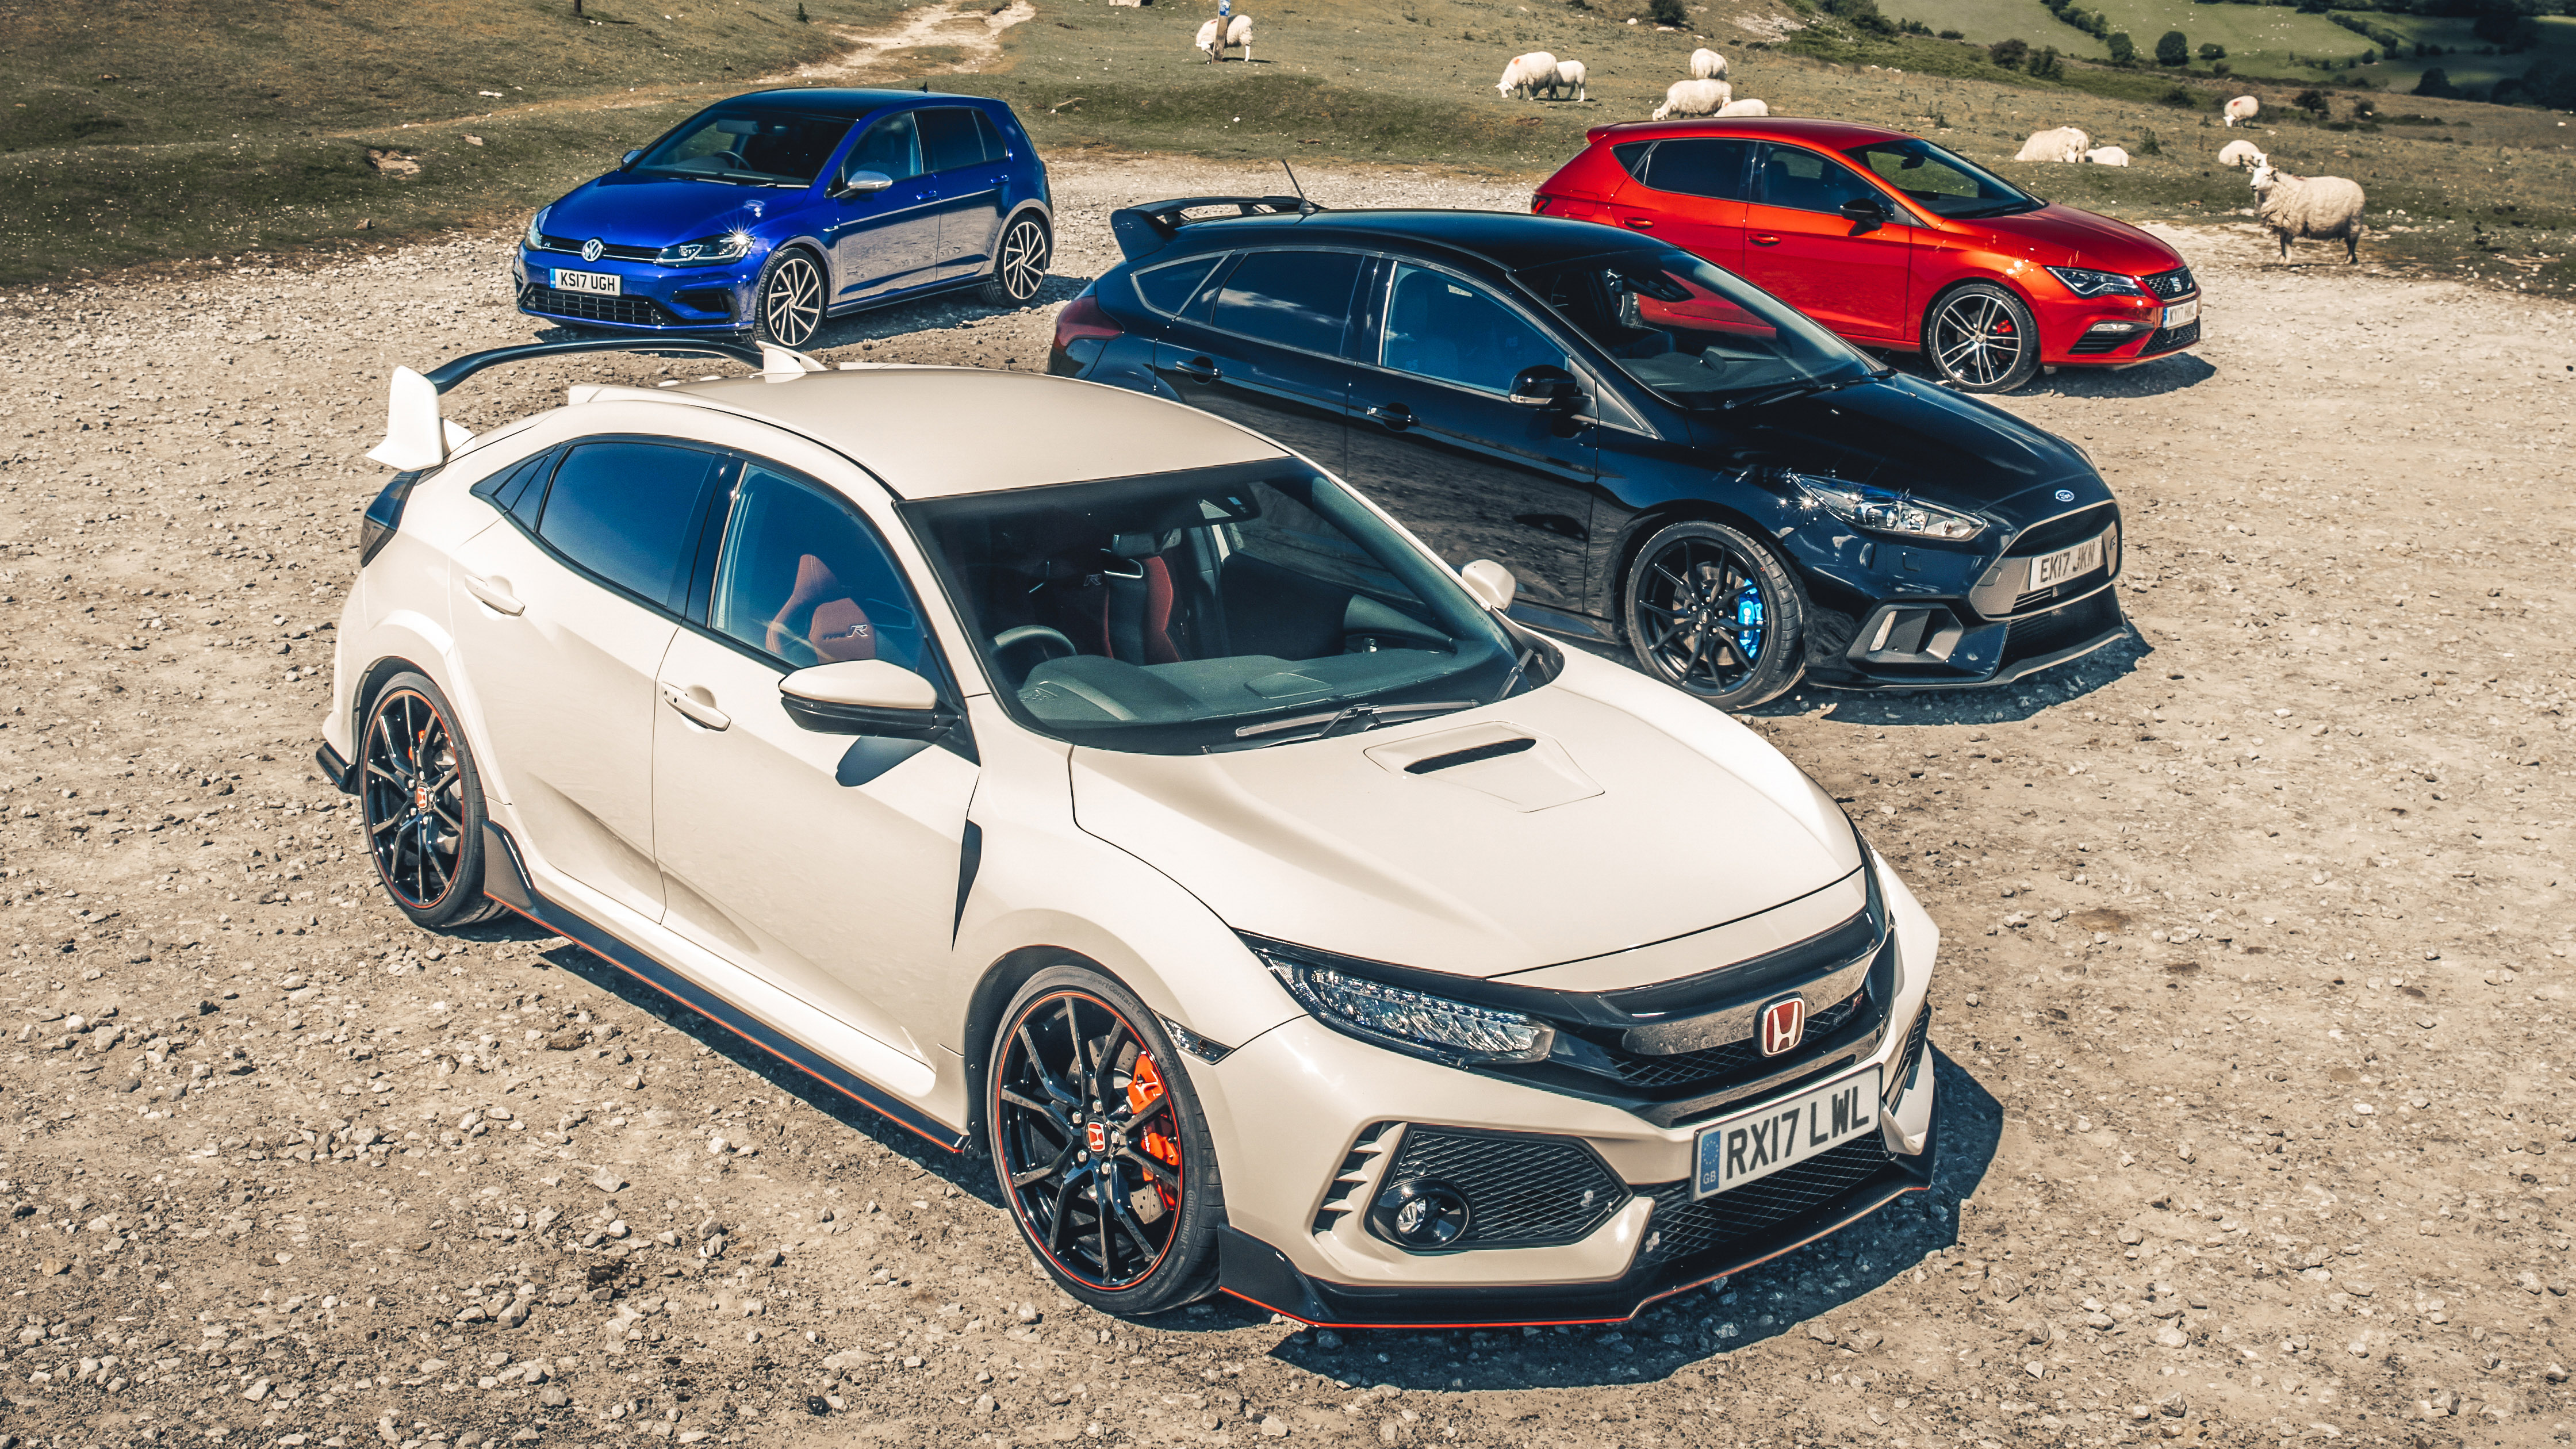 hot hatch shootout civic type r vs fiesta st vs vw golf r top gear. Black Bedroom Furniture Sets. Home Design Ideas